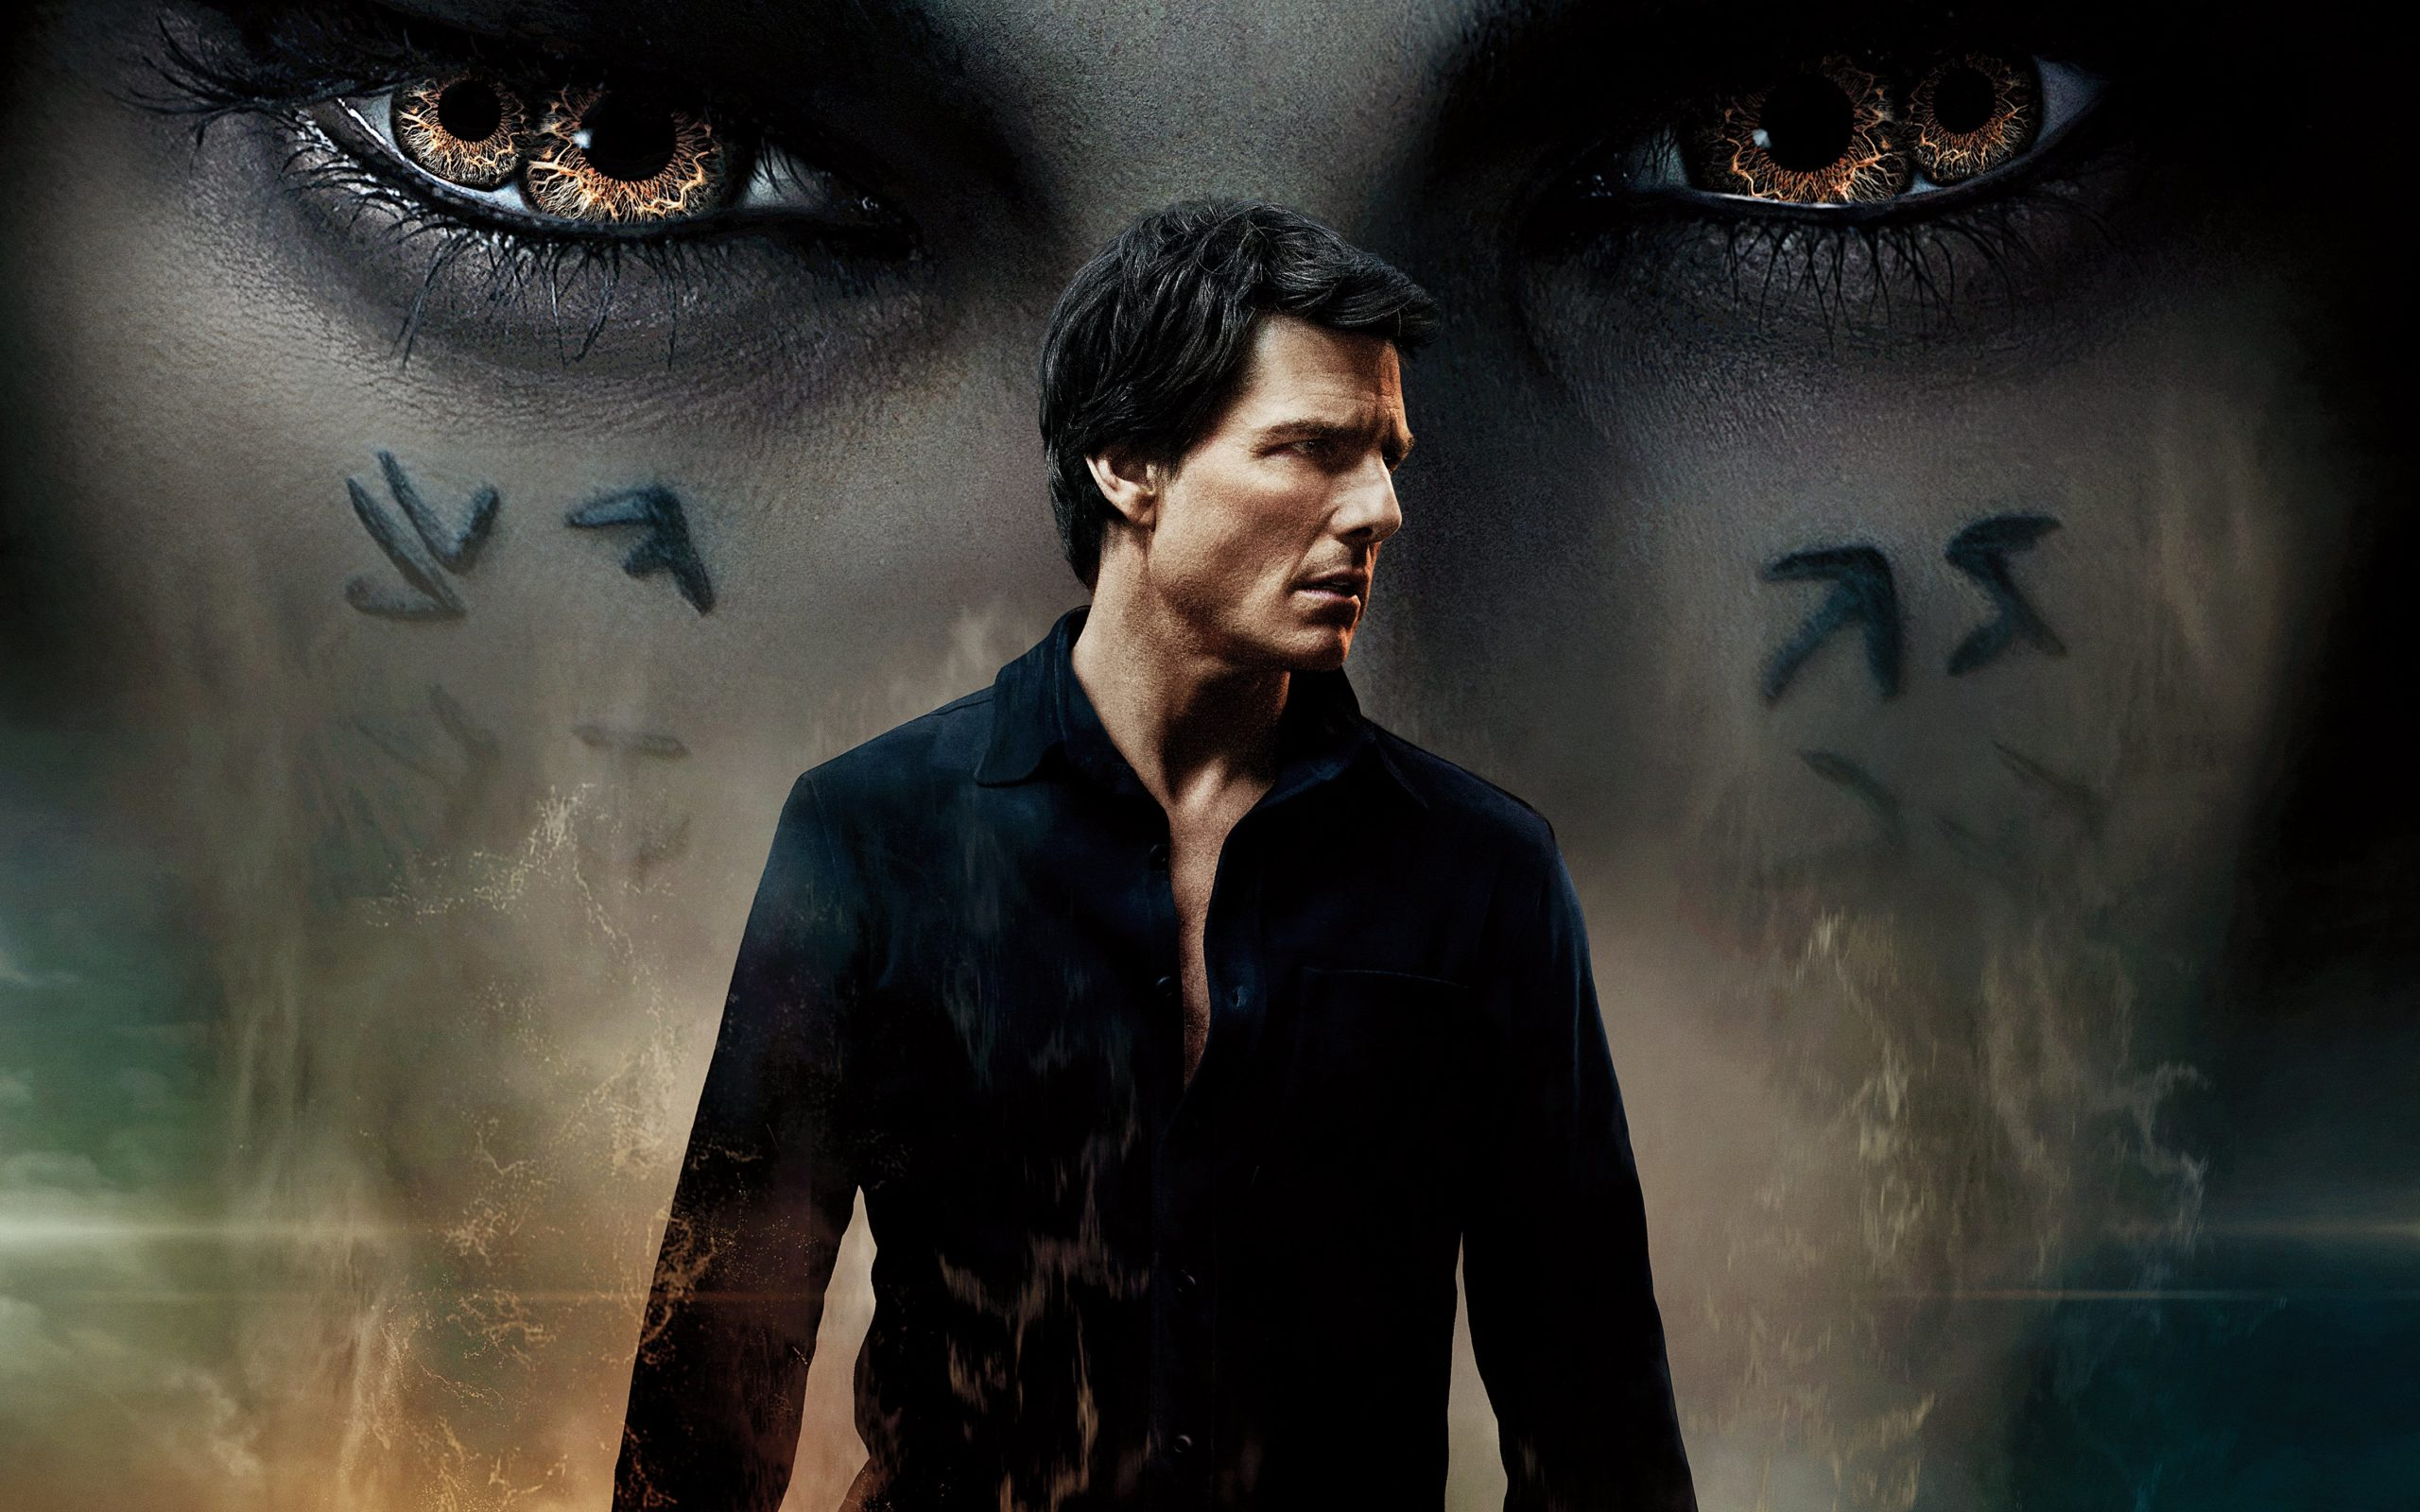 Did Tom Cruise Have Too Much Creative Control on The Mummy? - Den of Geek